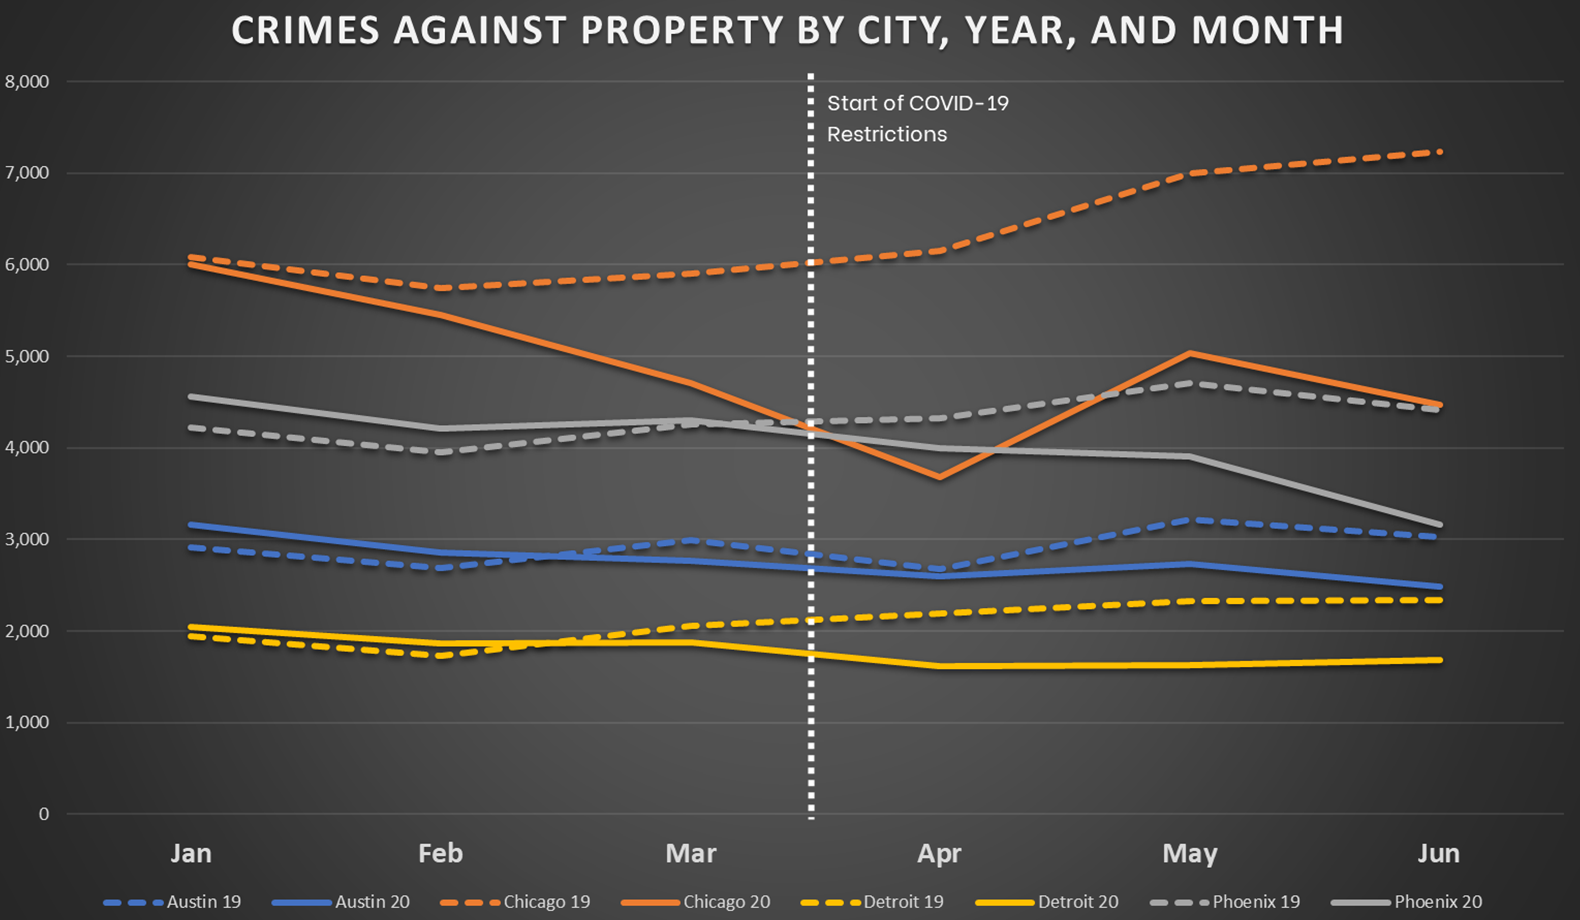 Crimes Against Property by City, Year, and Month for Central Cities